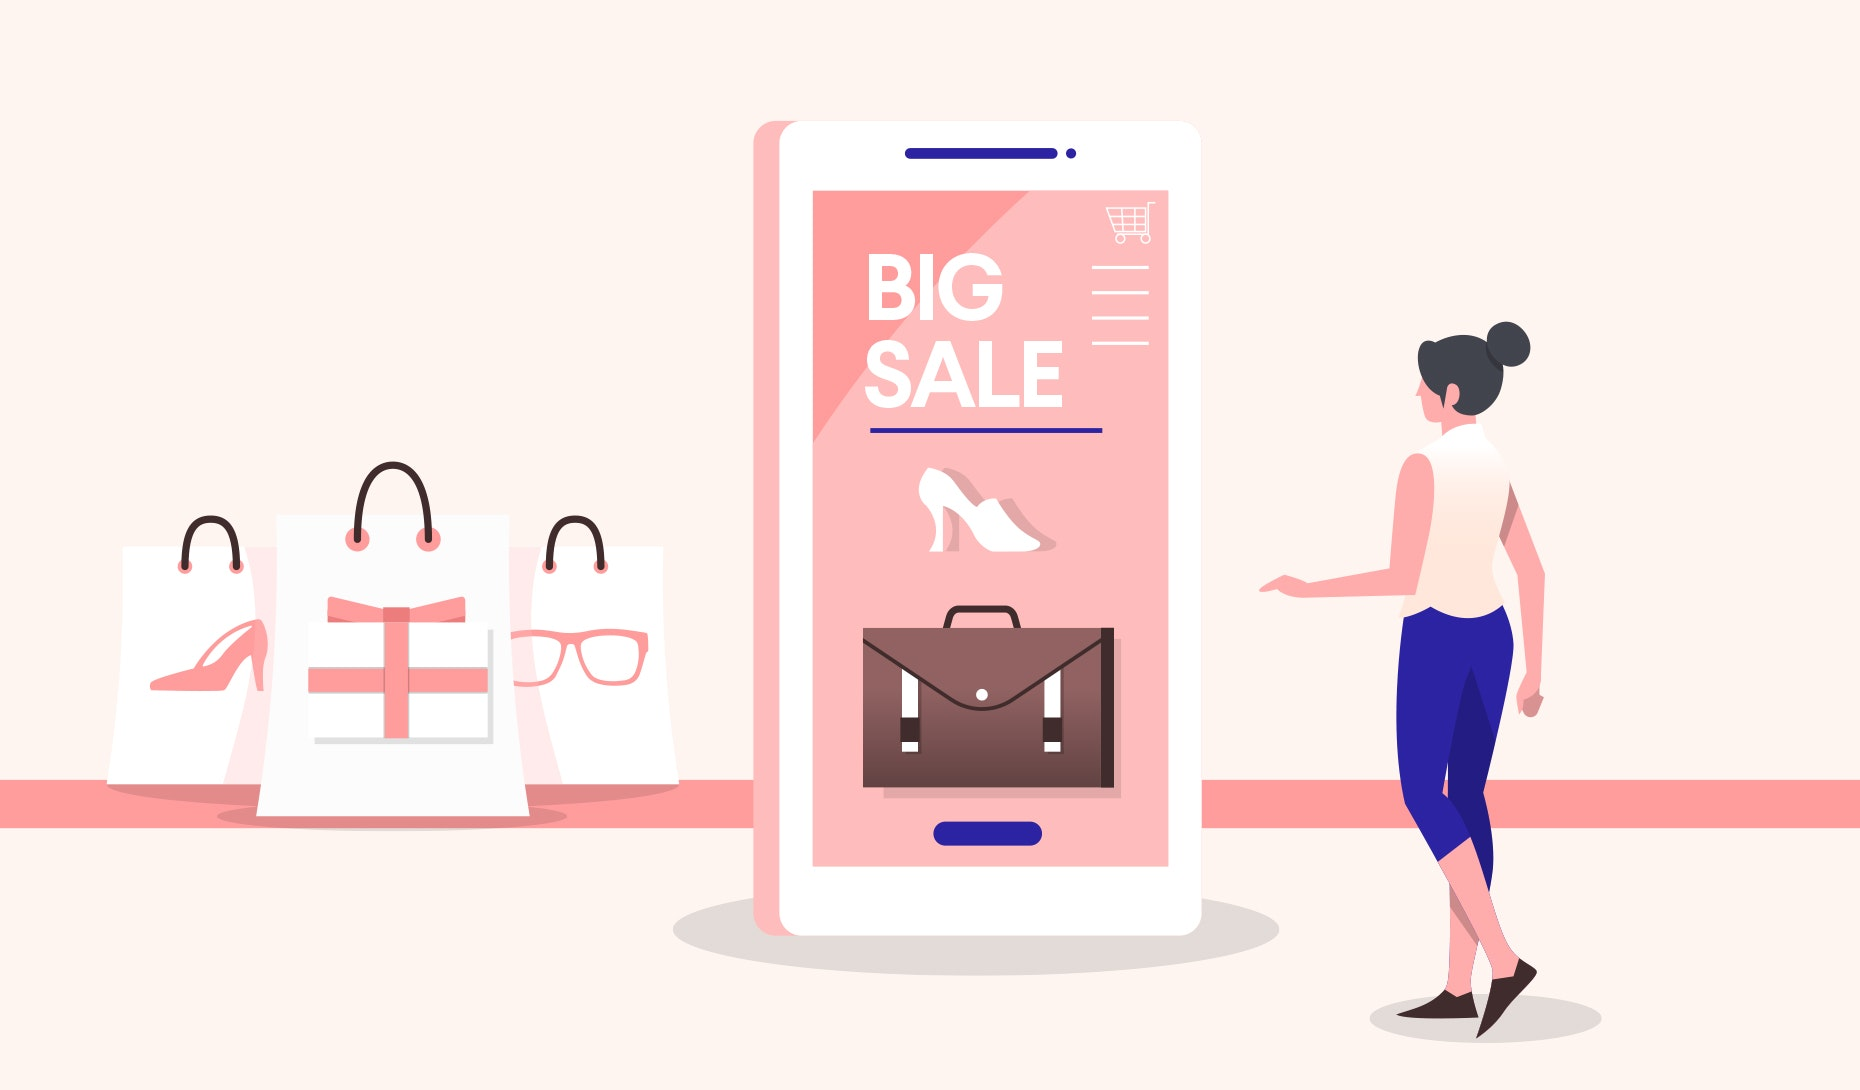 Ecommerce website design tips and ideas